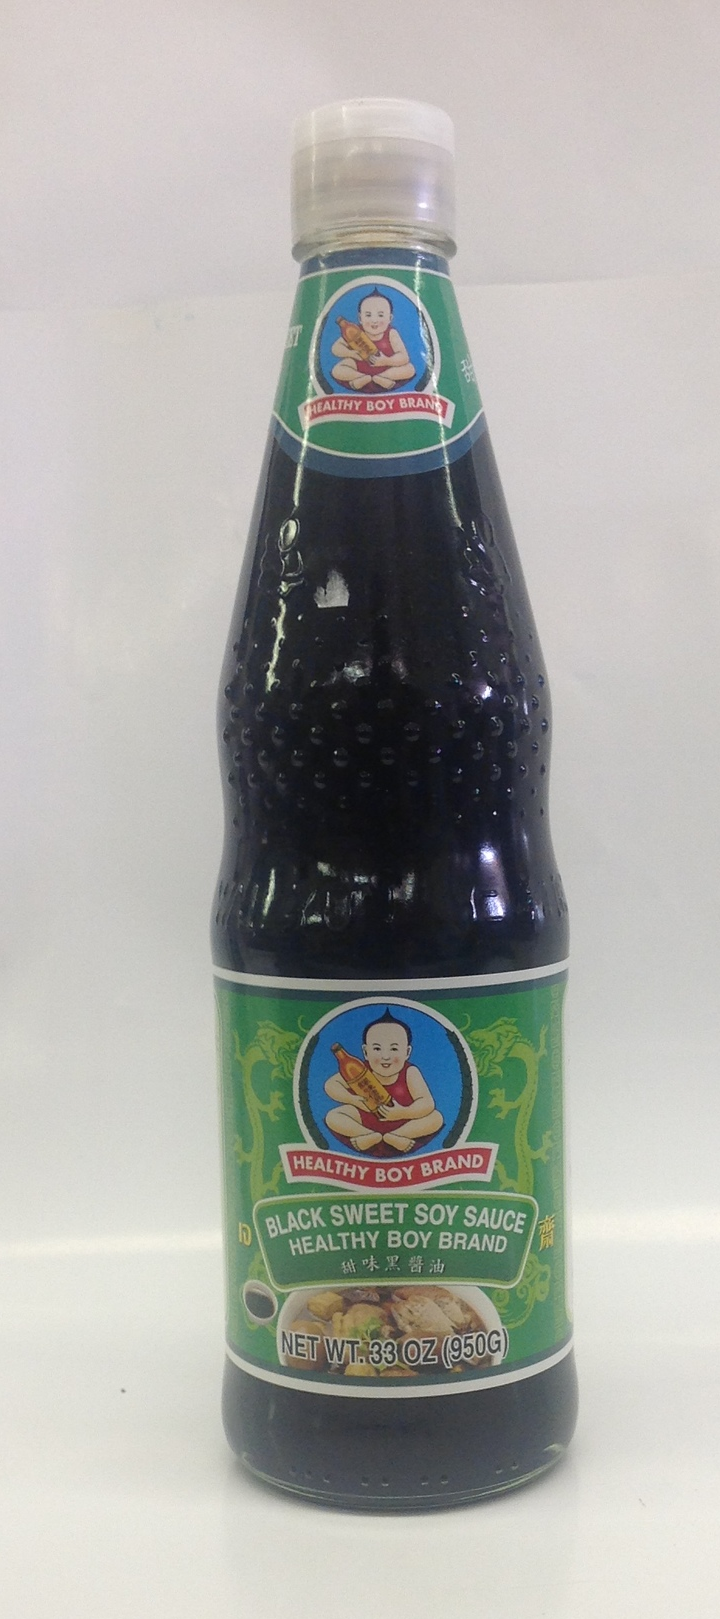 Black Sweet Soy Sauce   Healthy Boy   SA11242 12x23 oz